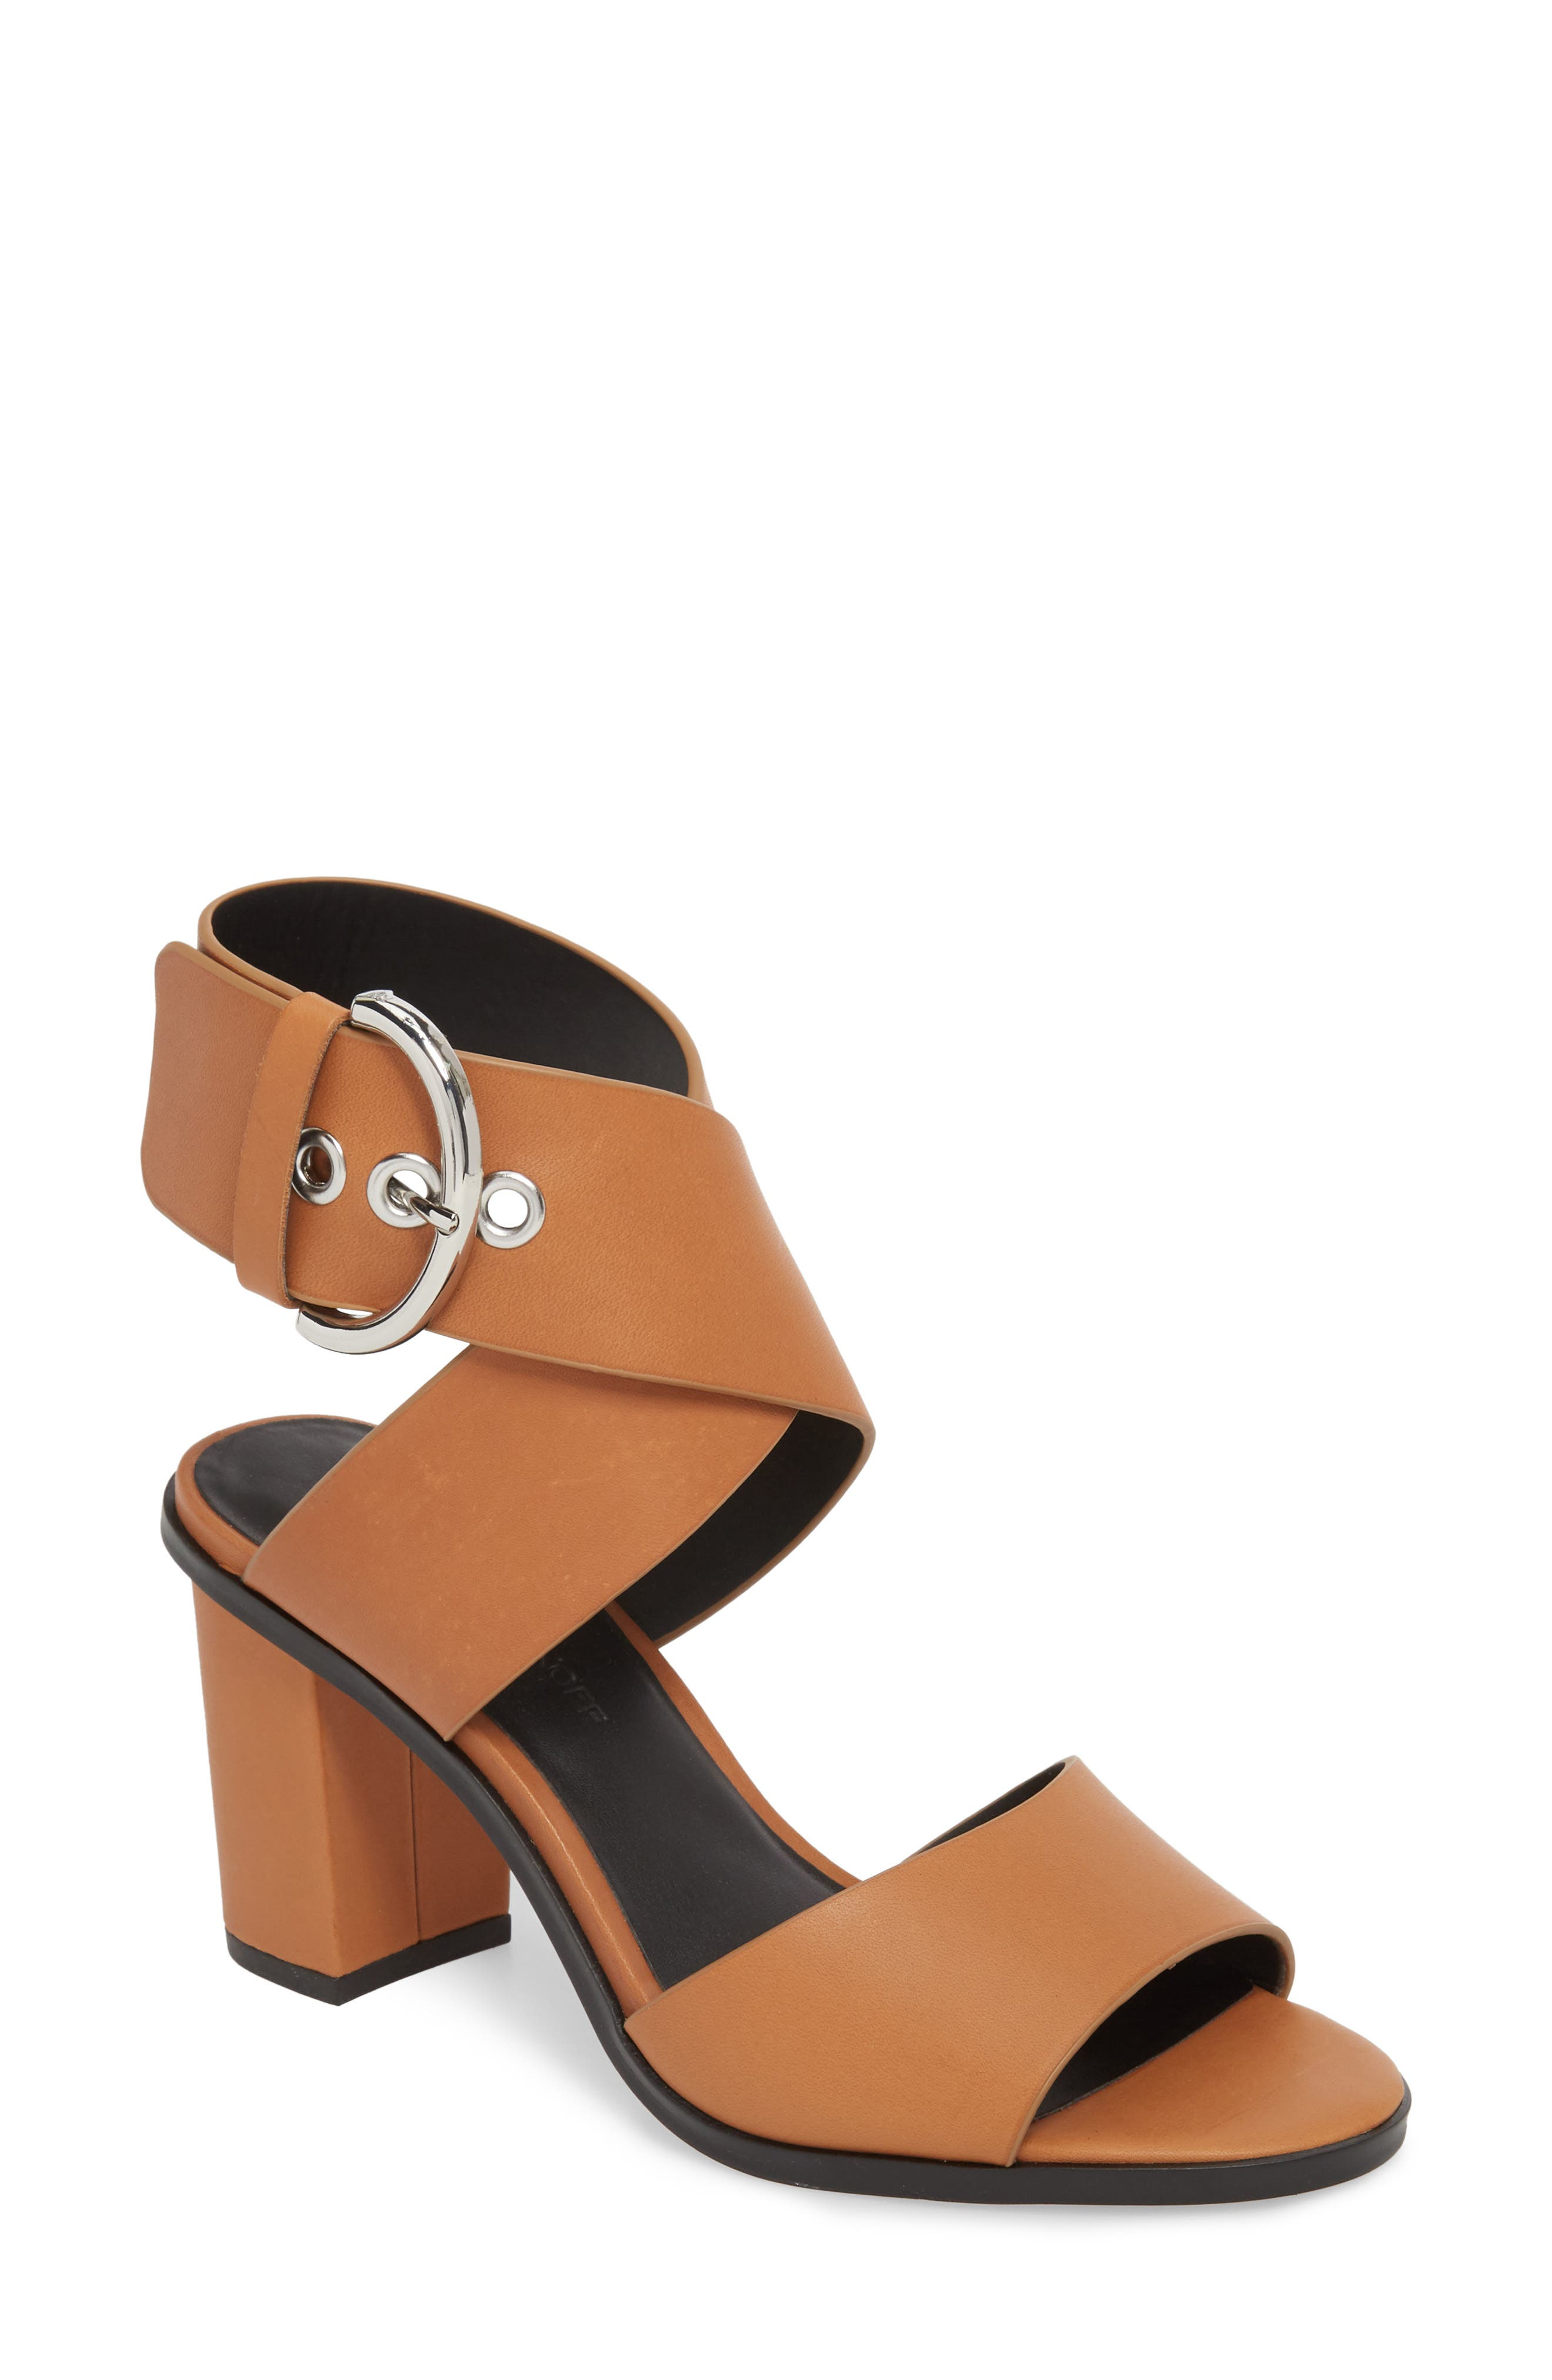 Valaree Sandal,                             Main thumbnail 1, color,                             ALMOND LEATHER